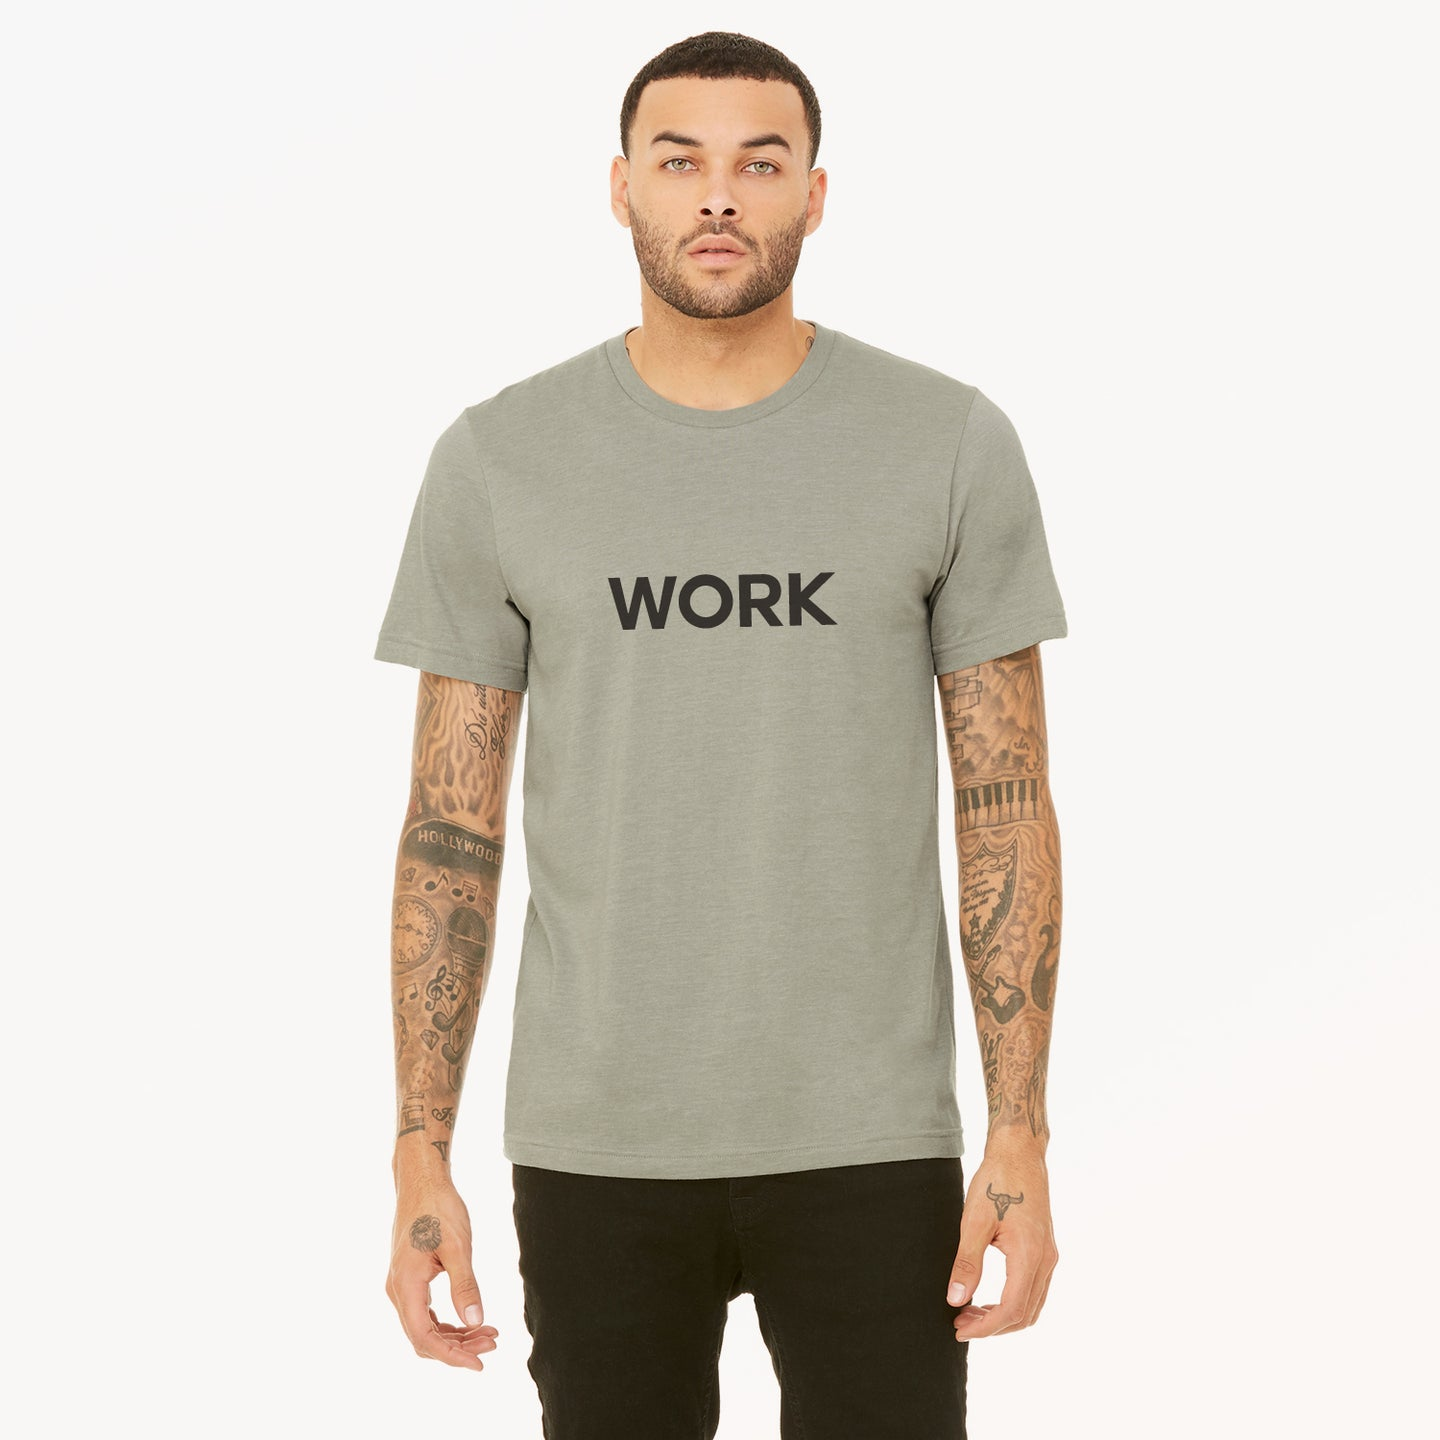 Work graphic screenprinted in white on the front of a heather stone unisex soft cotton jersey t-shirt.